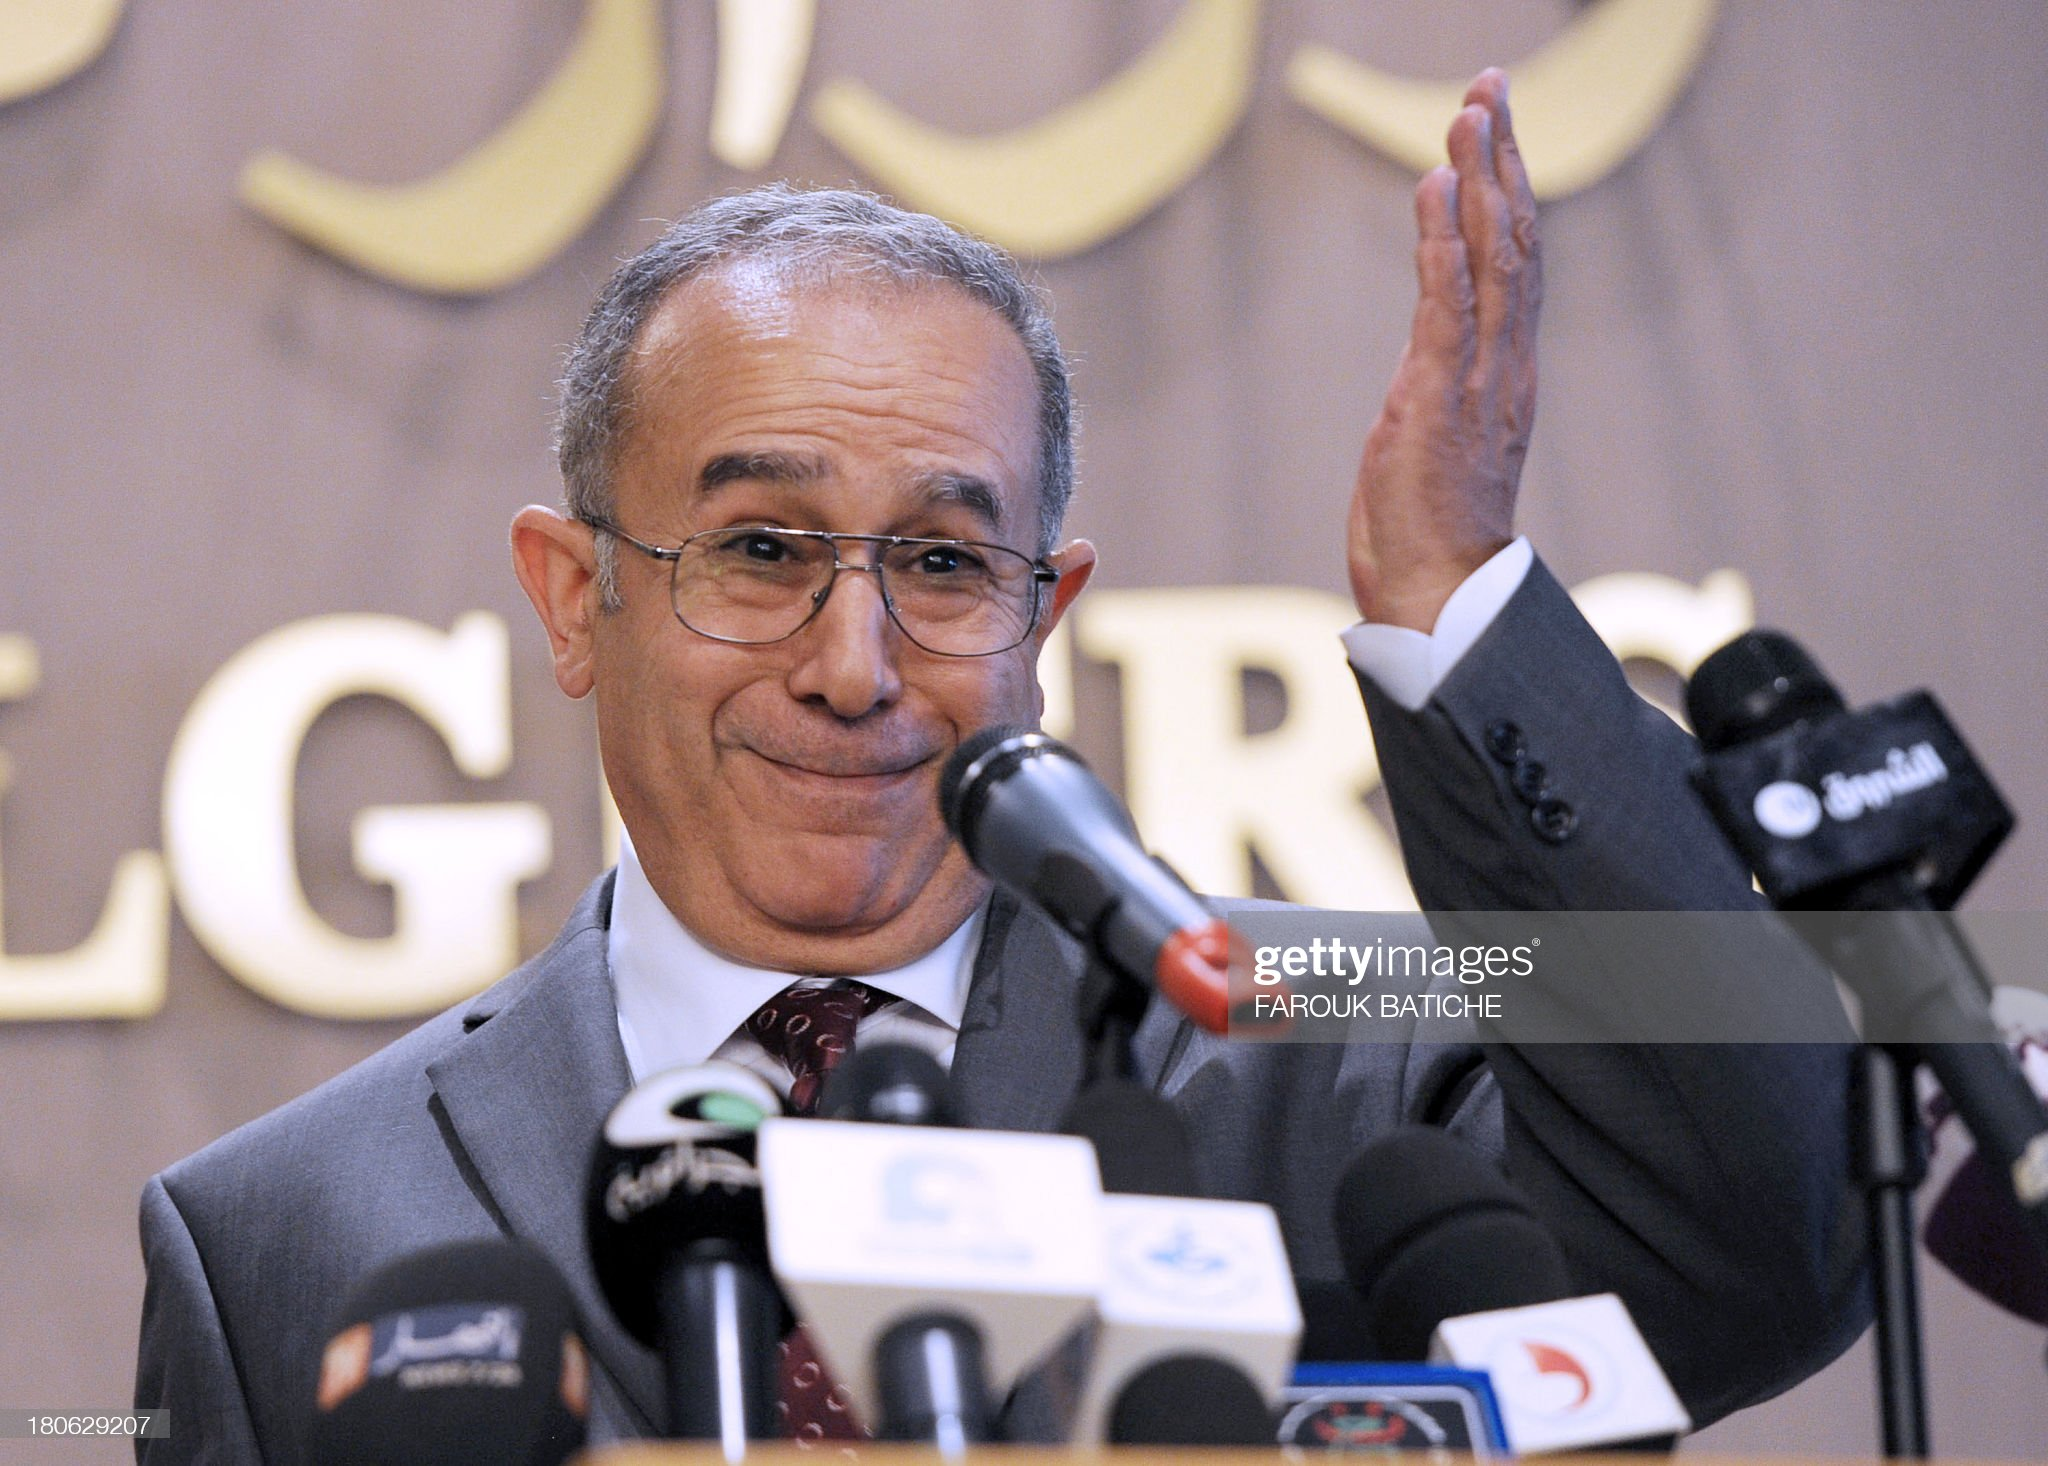 Norteafricanos Newly-appointed-algerian-foreign-affairs-minister-ramtane-lamamra-a-picture-id180629207?s=2048x2048